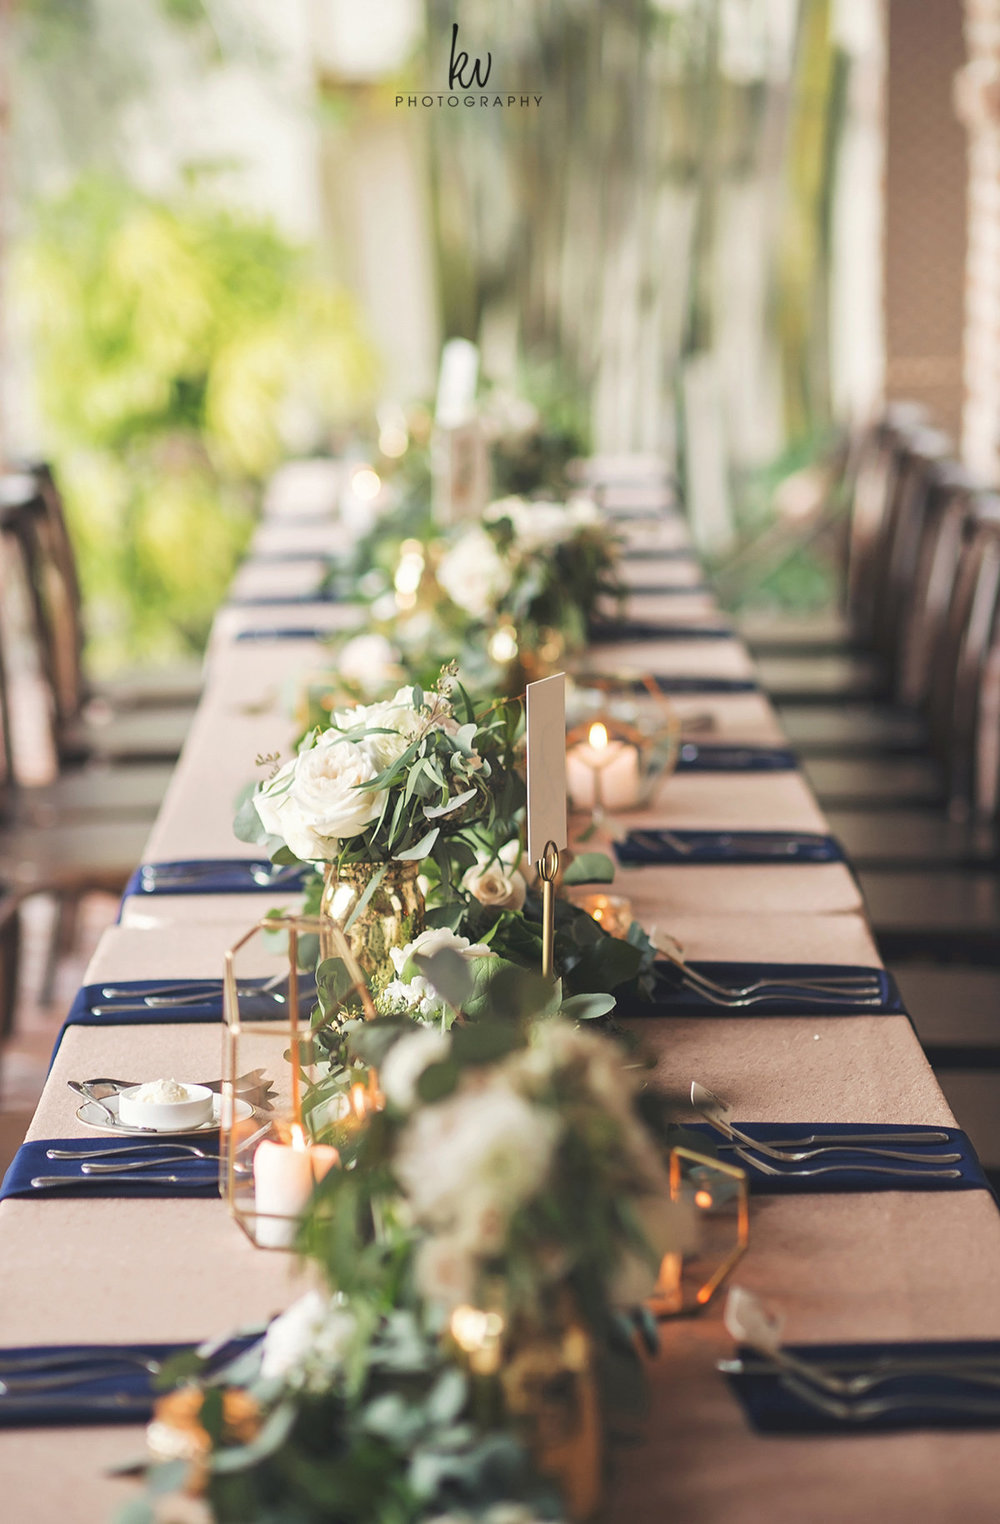 Banquet tables at Winter Park wedding reception